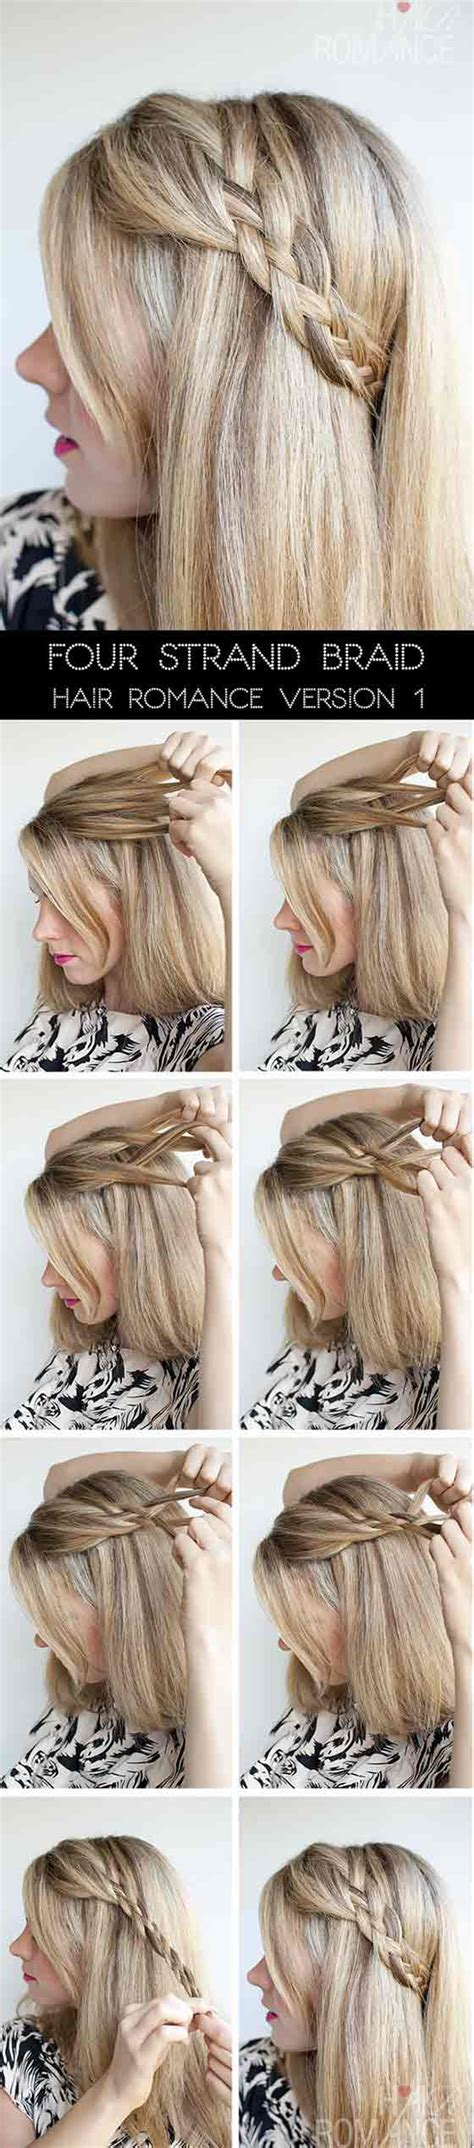 Hairstyles For School Step By Step With Pictures by Hair Braids Step By Step With Pictures Www Pixshark